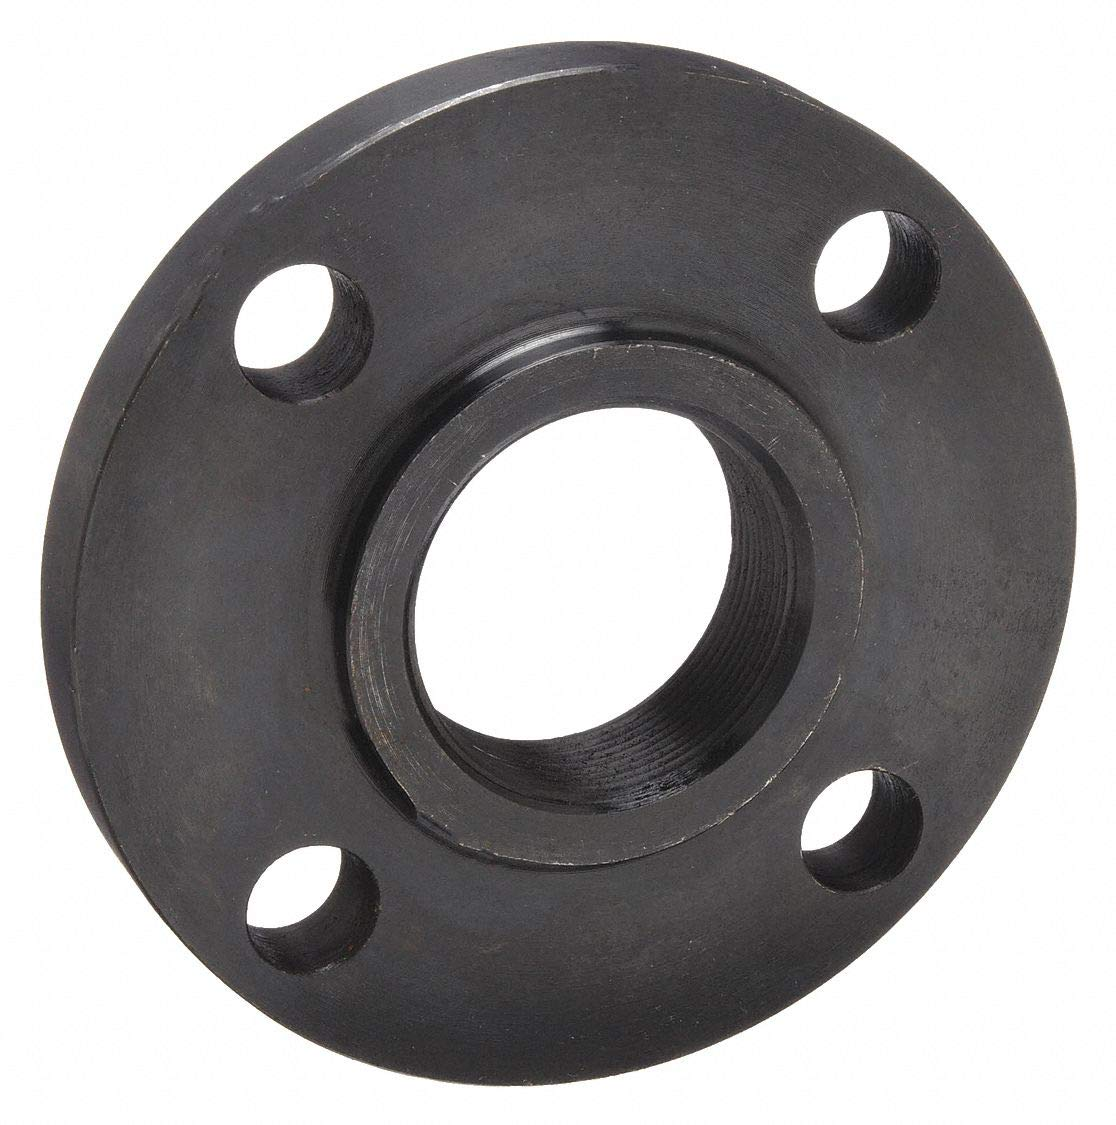 Welded Socket Weld Flange 5 New Free Shipping Finally popular brand in Size Fitting 2040000 Pipe -